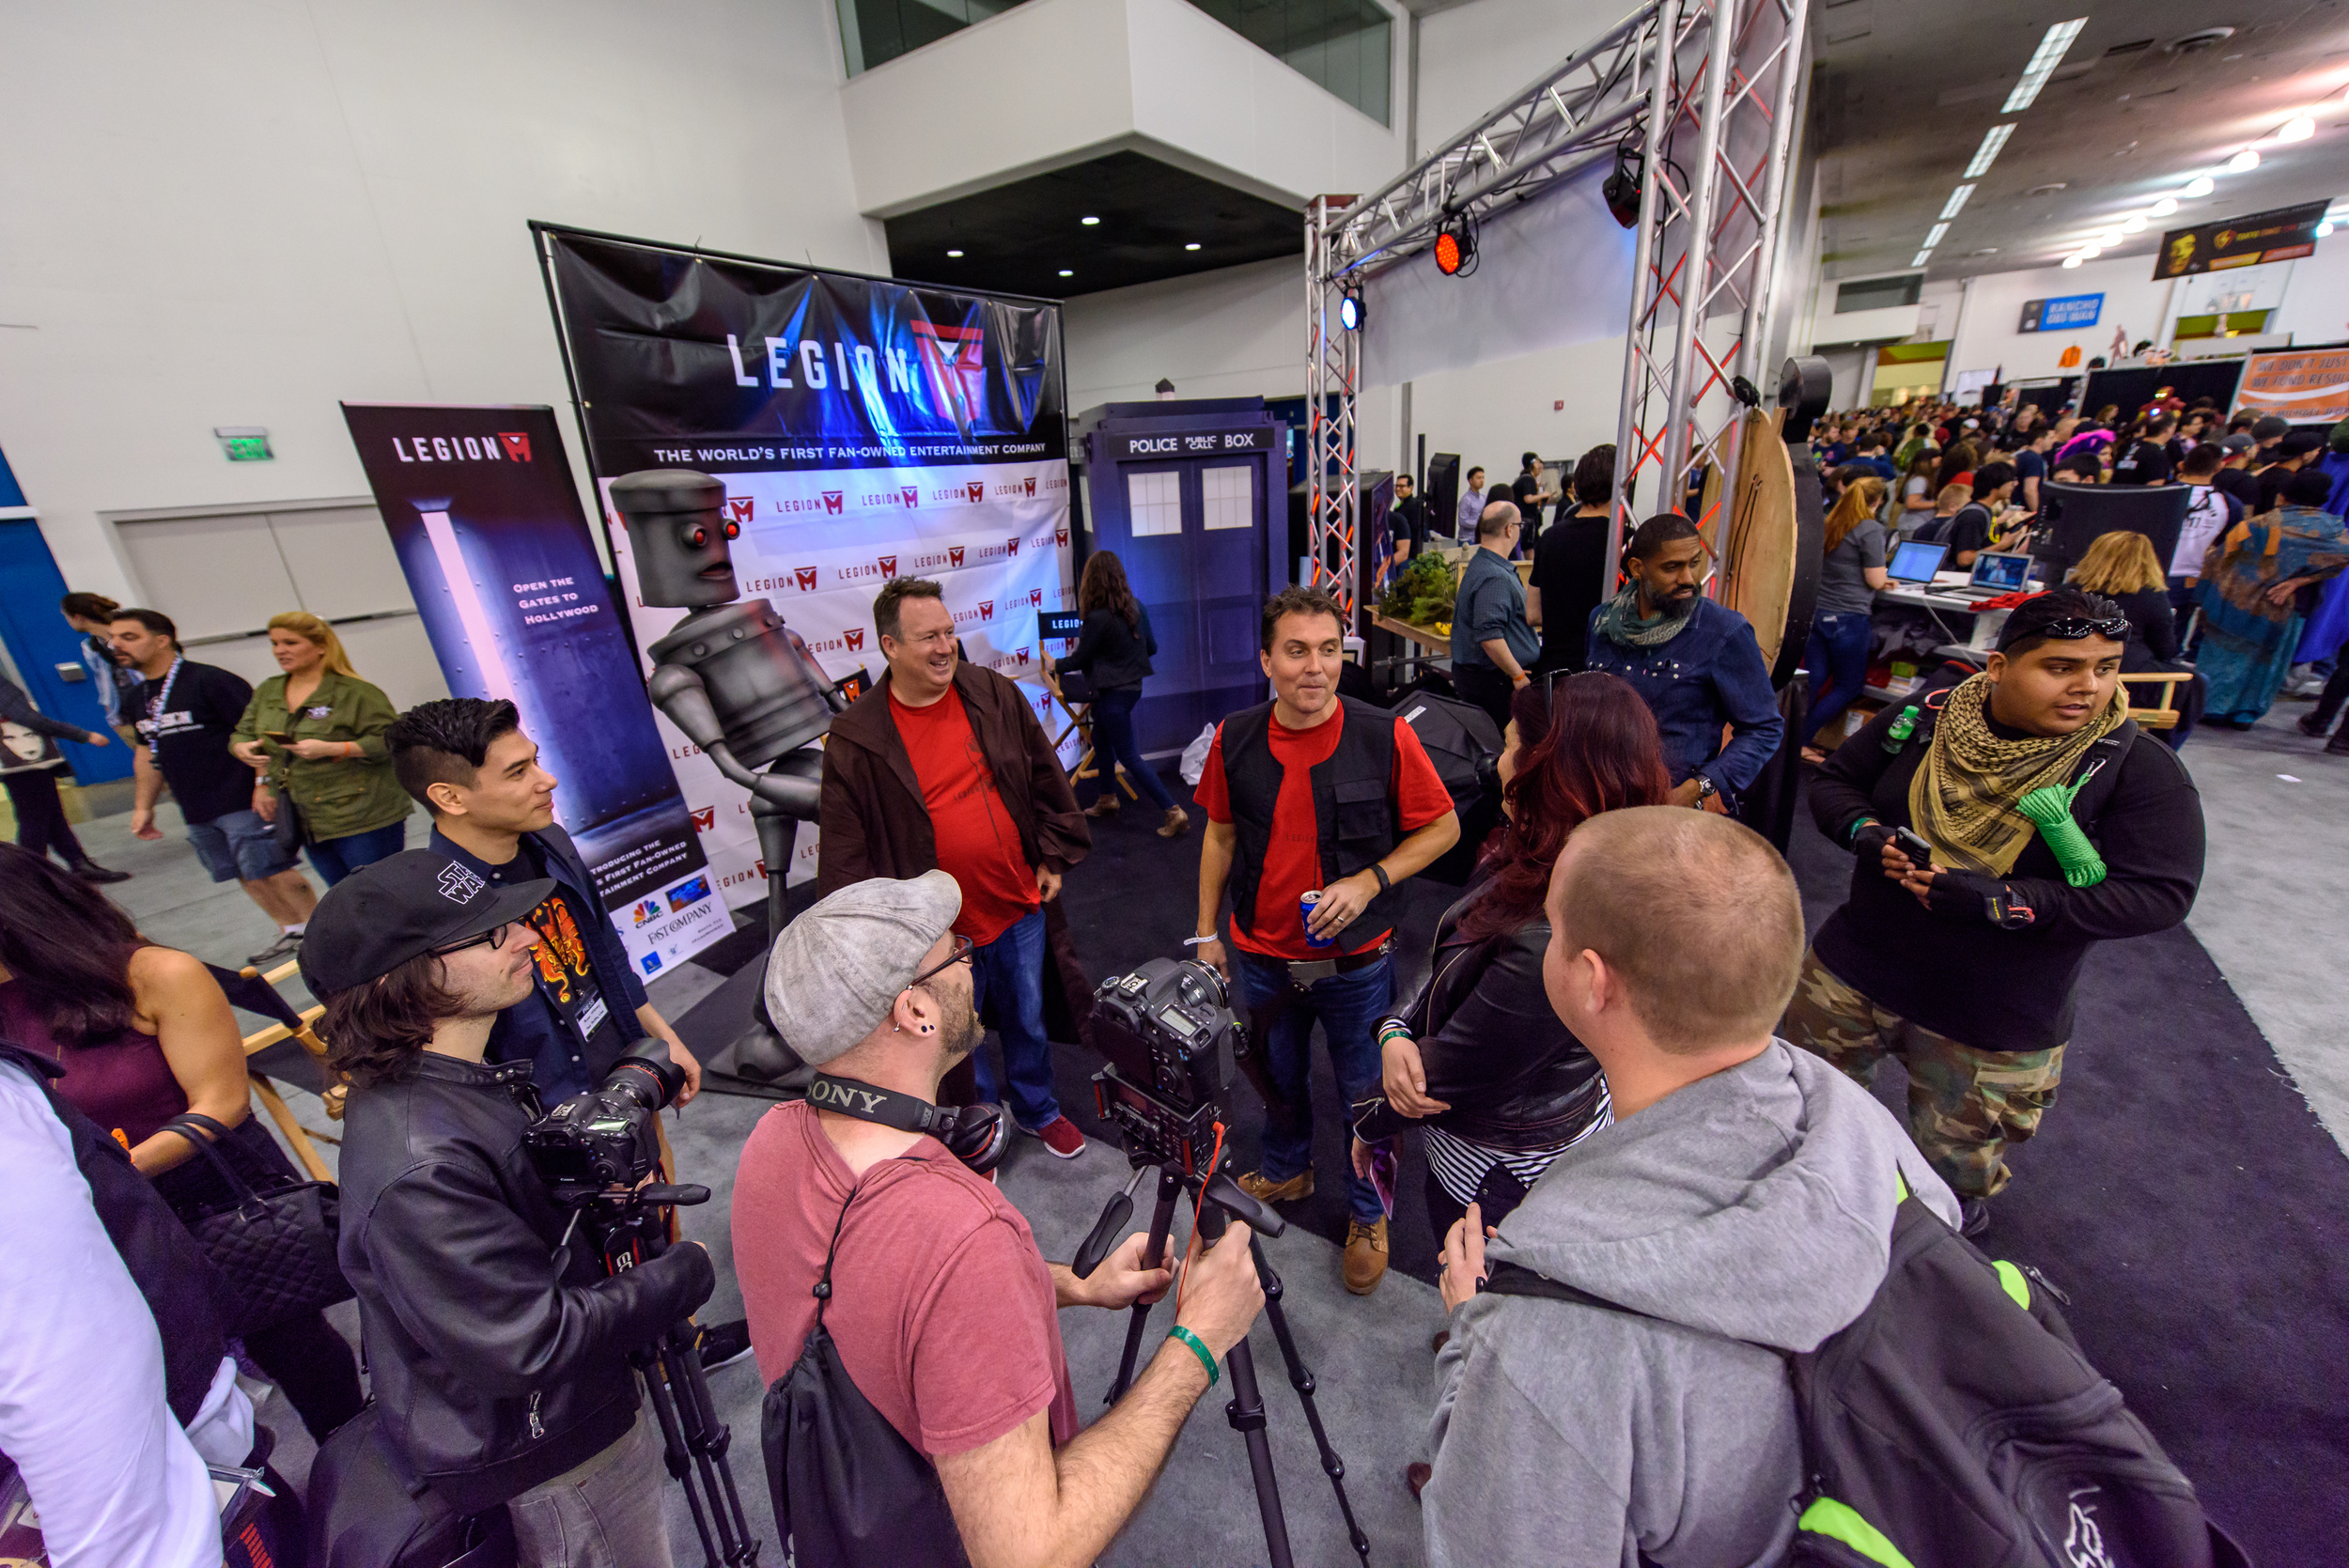 Our booth was swamped with media all weekend long.